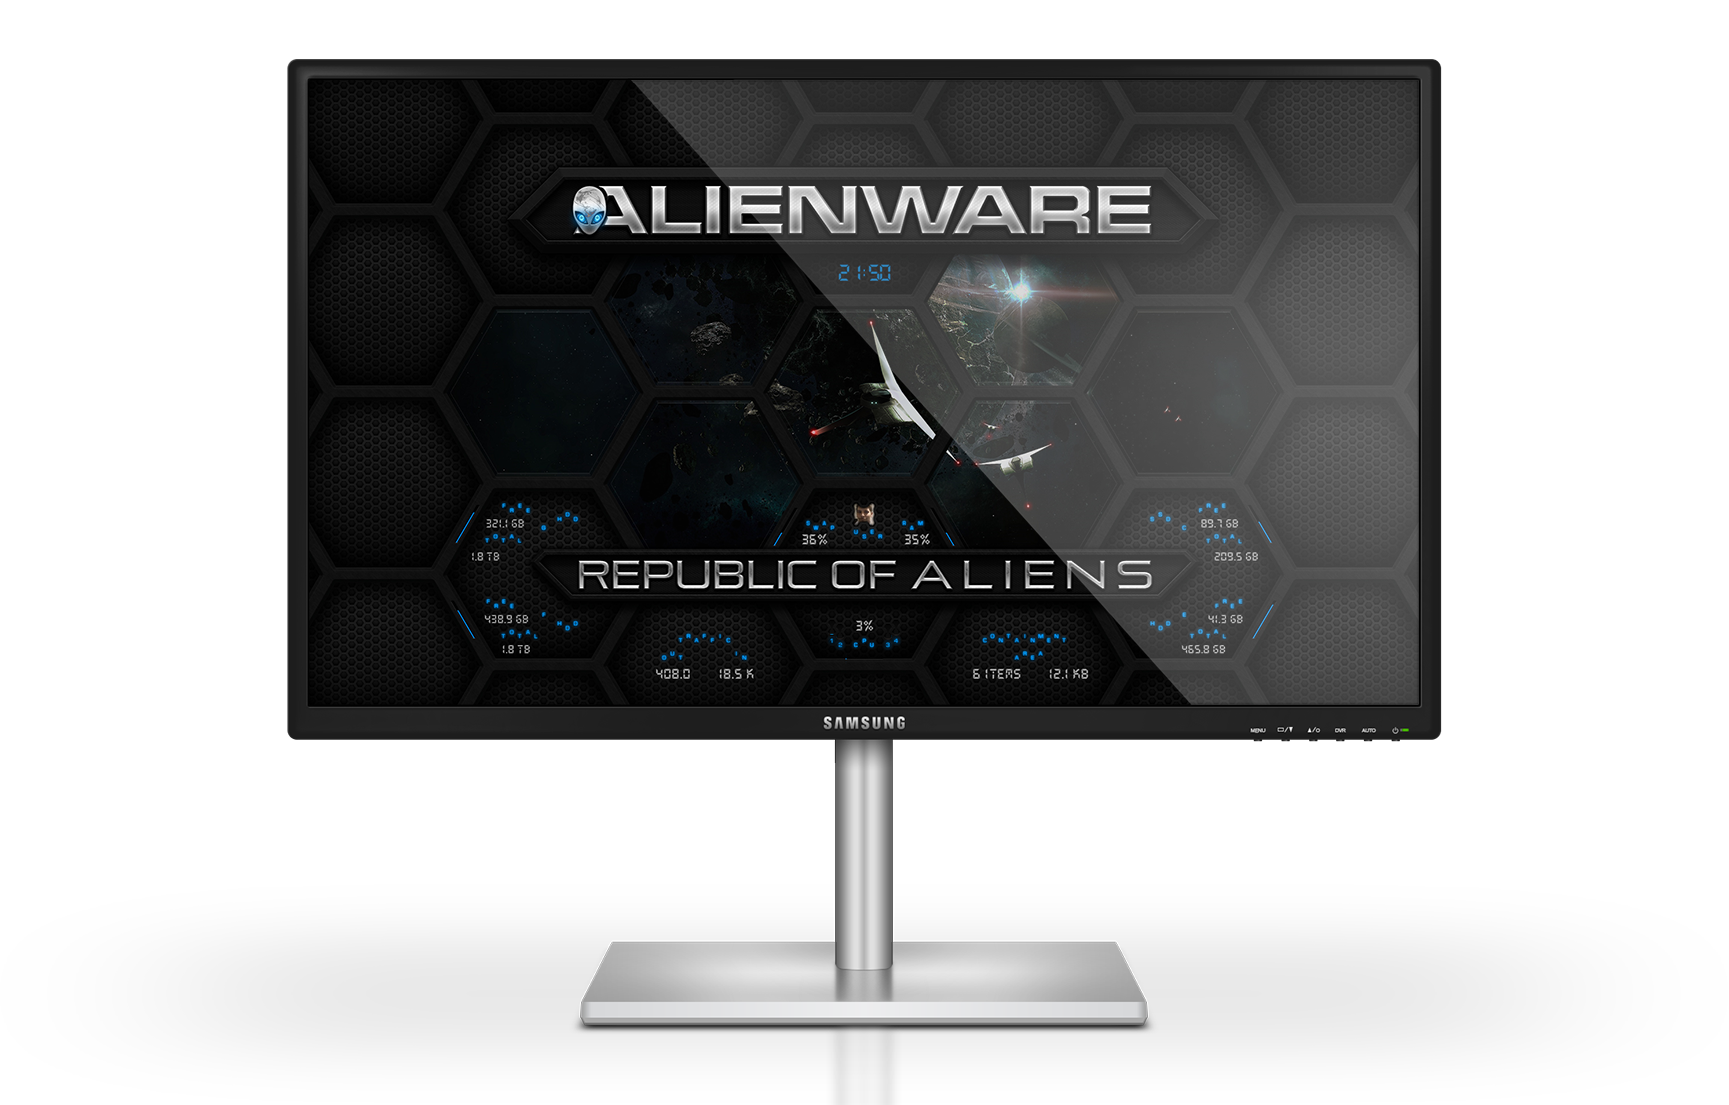 Alienware-HQ-BLUE-RM-Skin-Preview.png